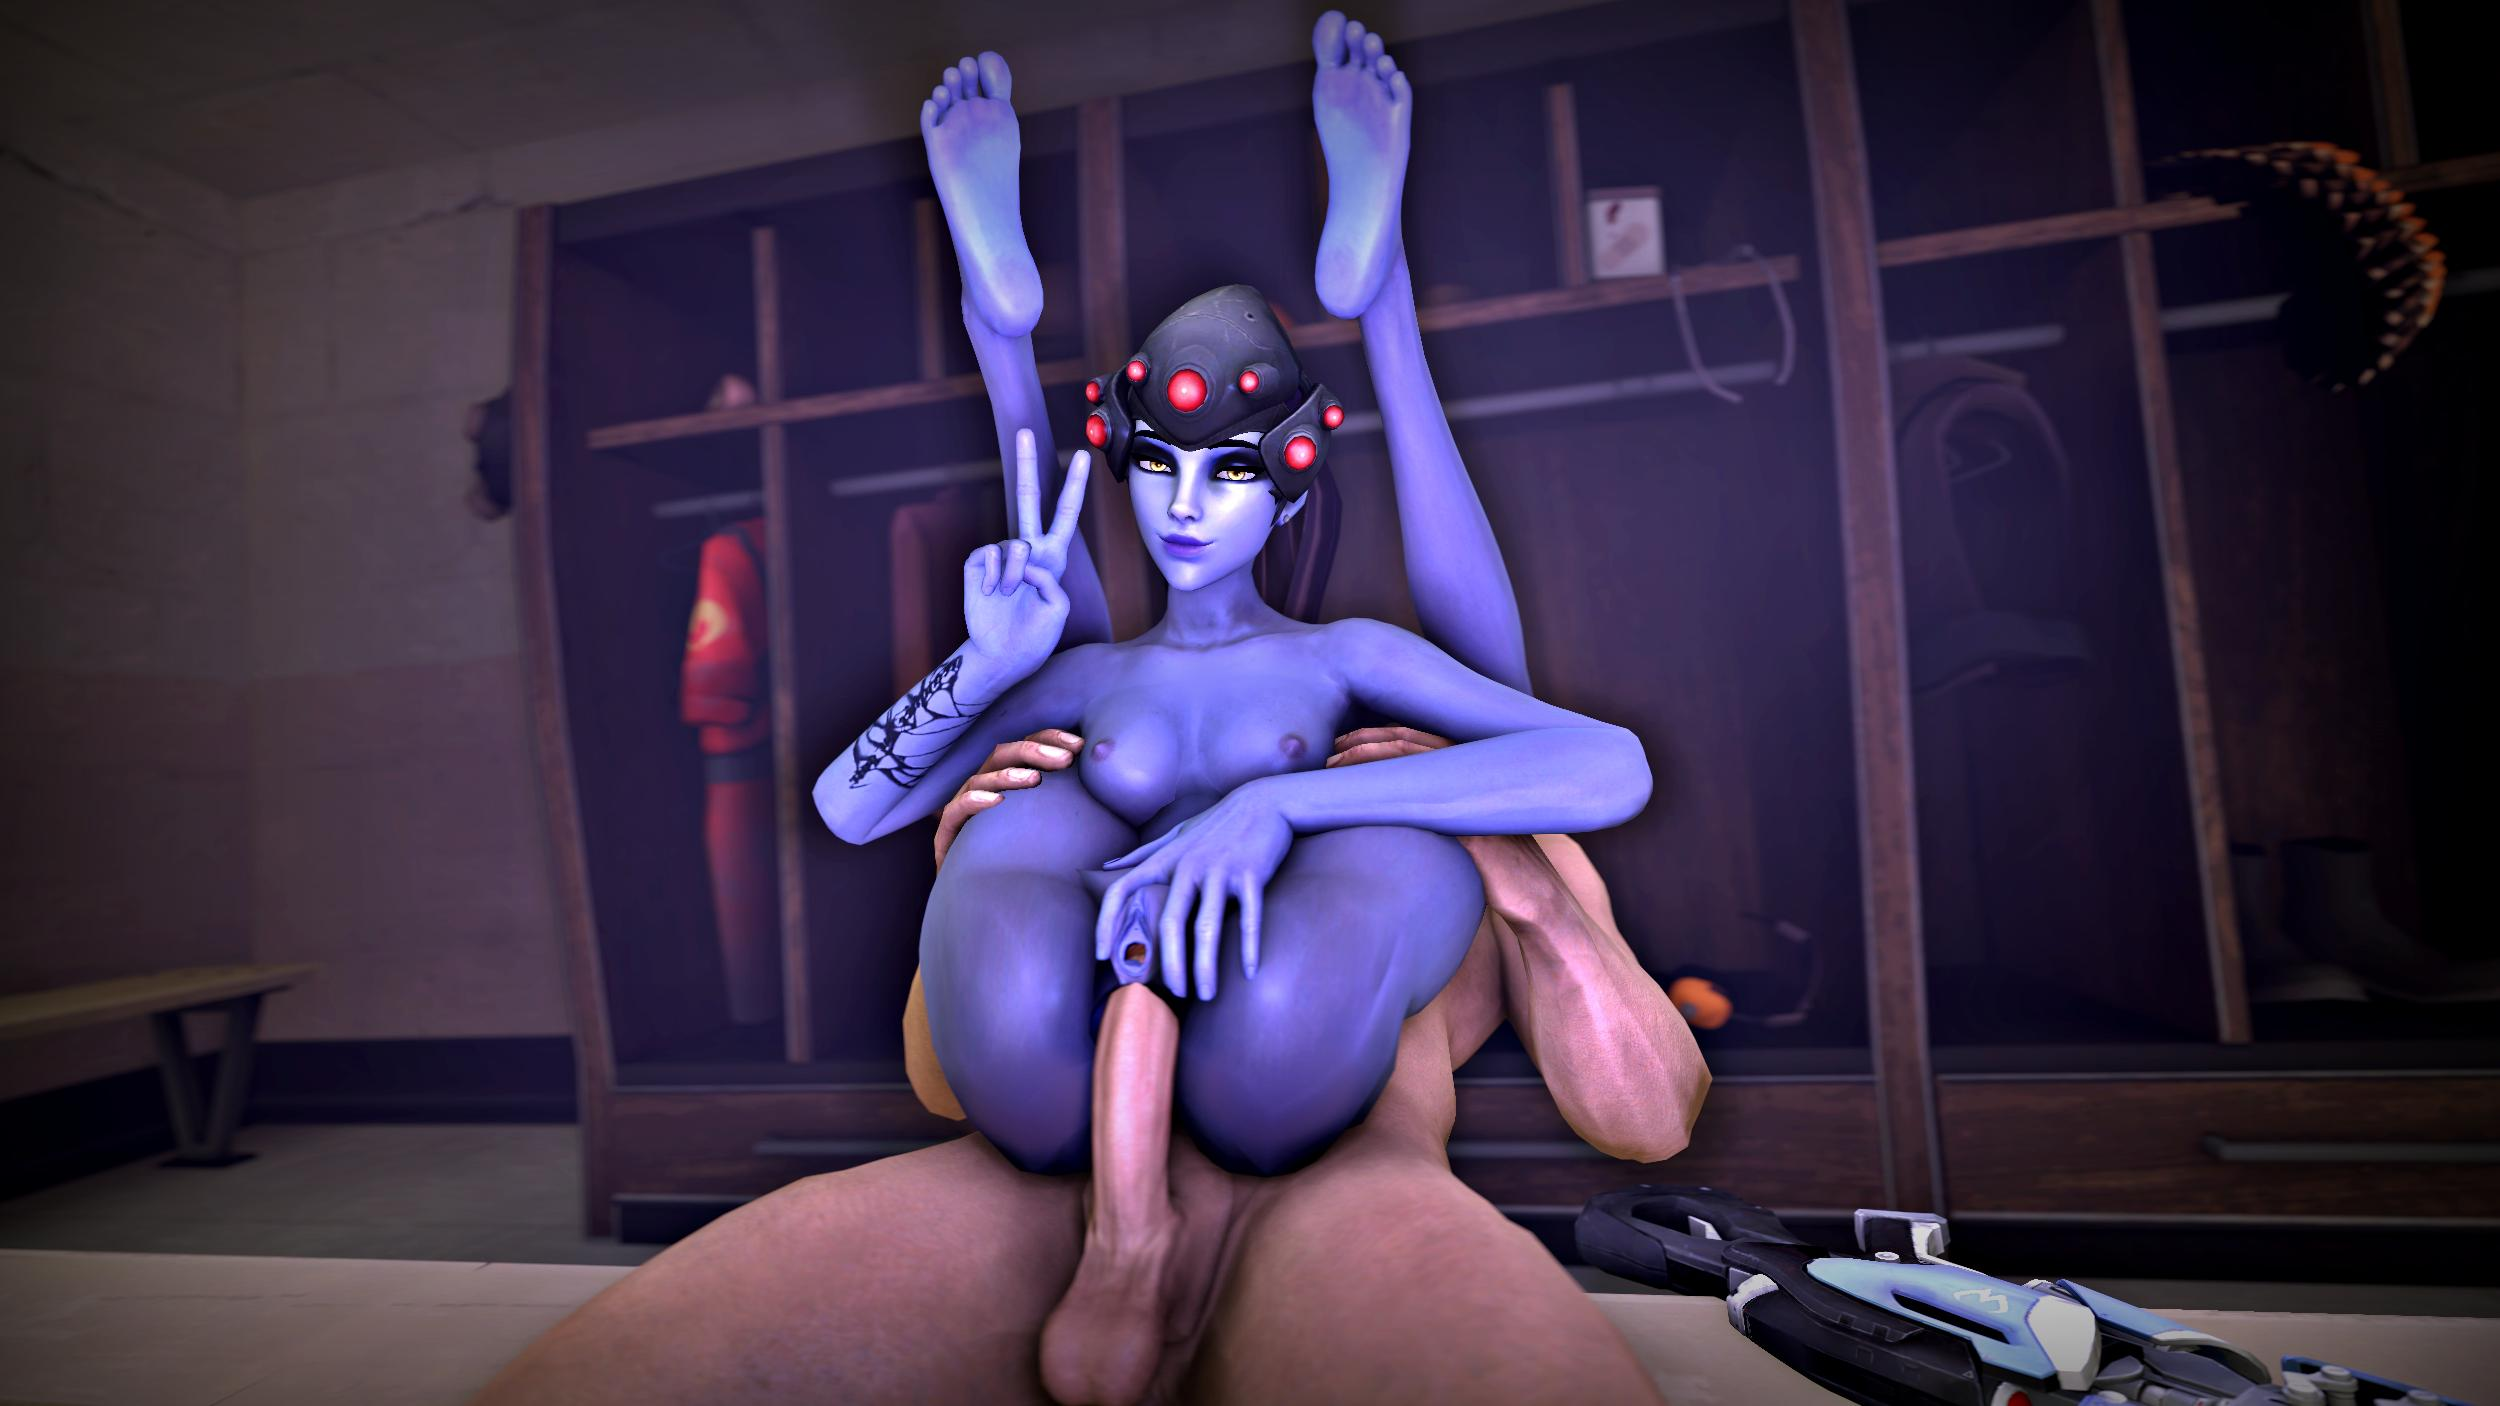 Widowmaker overwatch feet porn